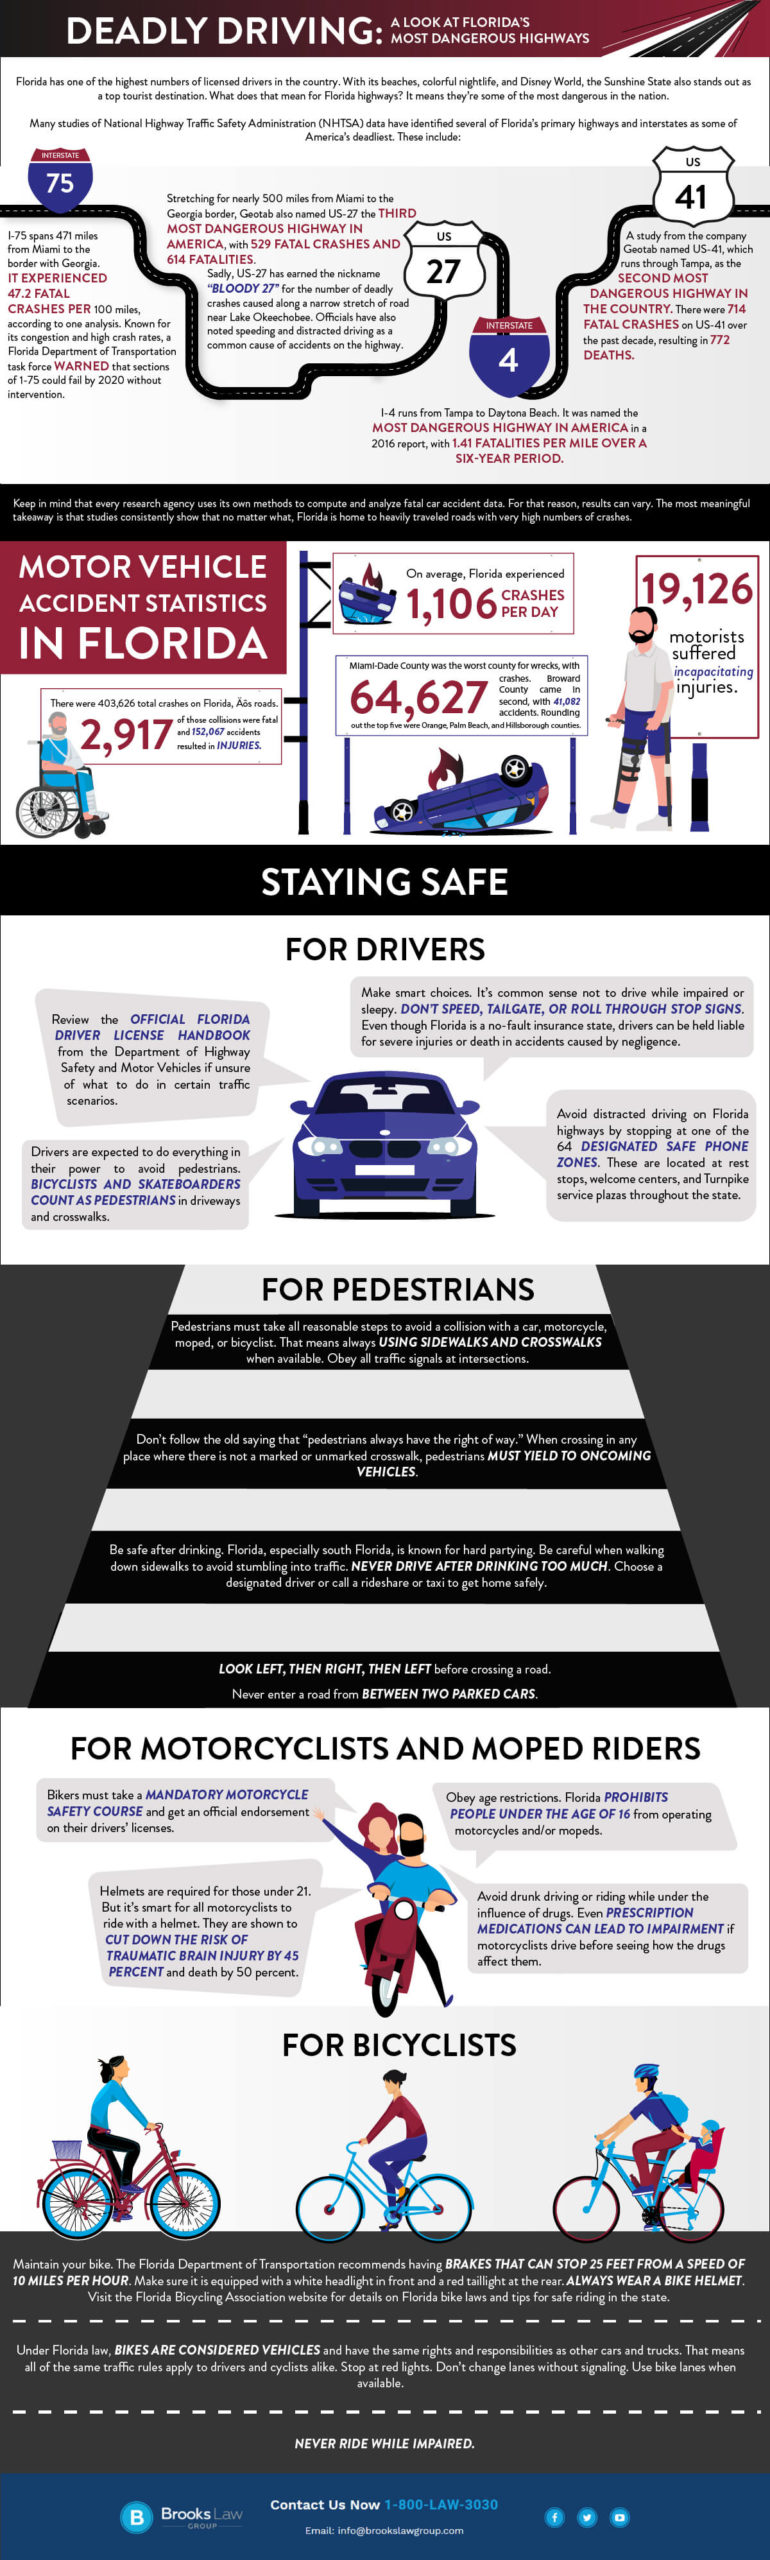 Brooks Law Group - Deadly Driving Florida's Most Dangerous Highways